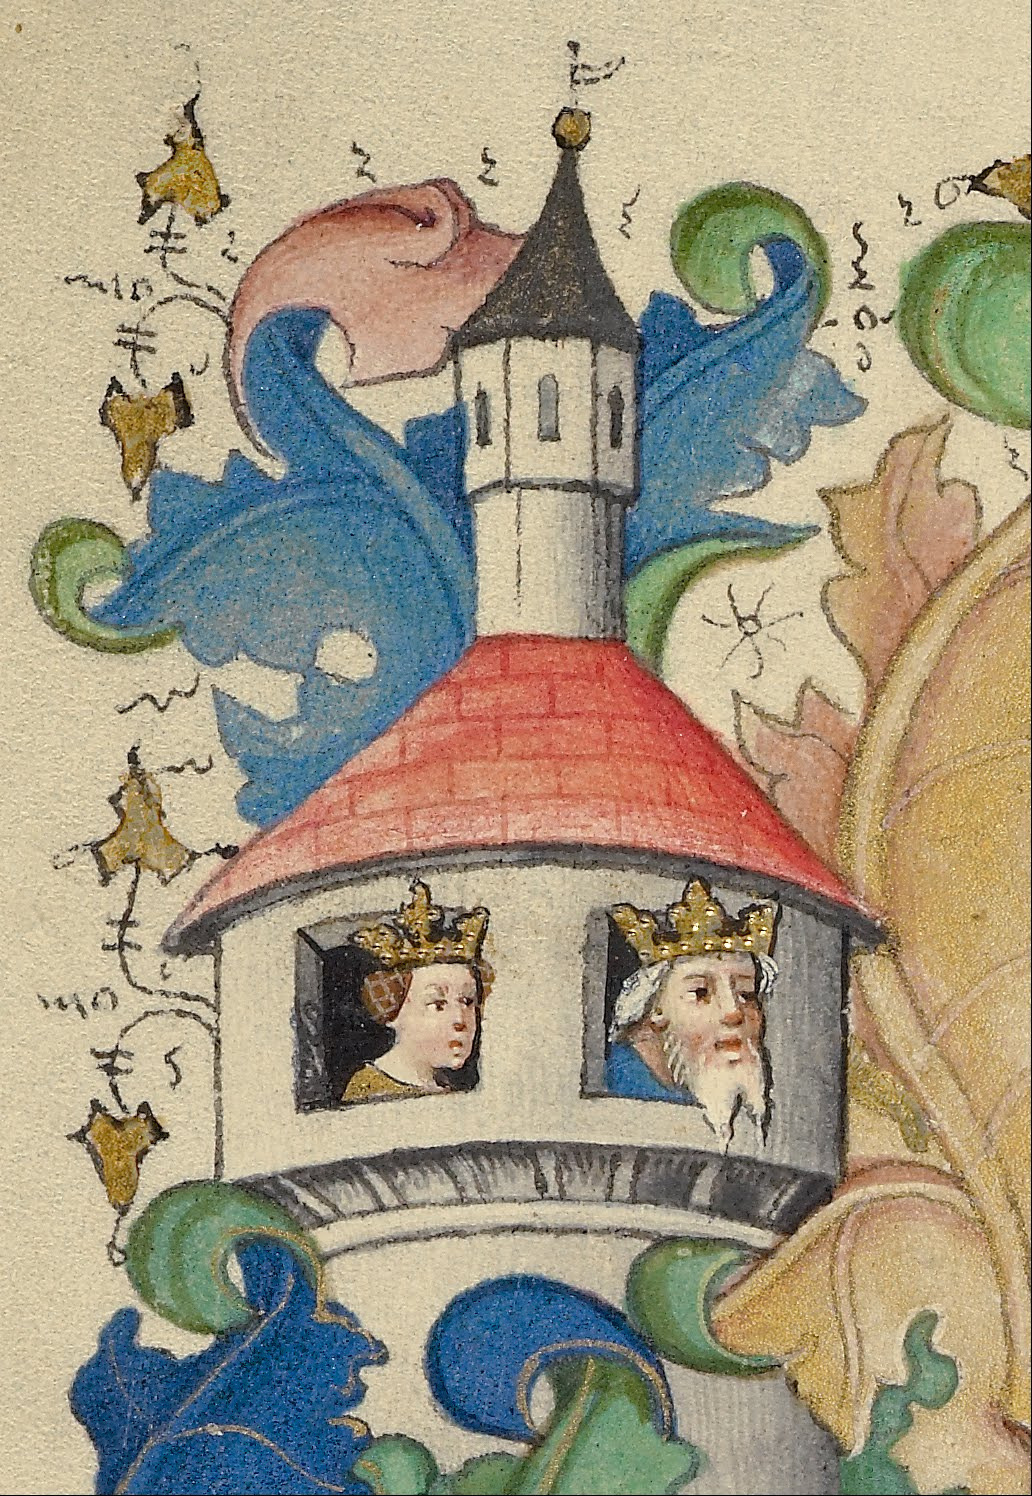 Pretty medieval manuscript of the day is a lovely close-up of a border illustration. I love the details here, the faces peeking out of the tower are so expressive! The gilding is so delicate, with highlights on the leaves and the crowns. I think it's delightful. Image source:Master of Guillebert de Mets, from the Google Art Project via Wikimedia Commons. Image declared as public domain on Wikimedia Commons.